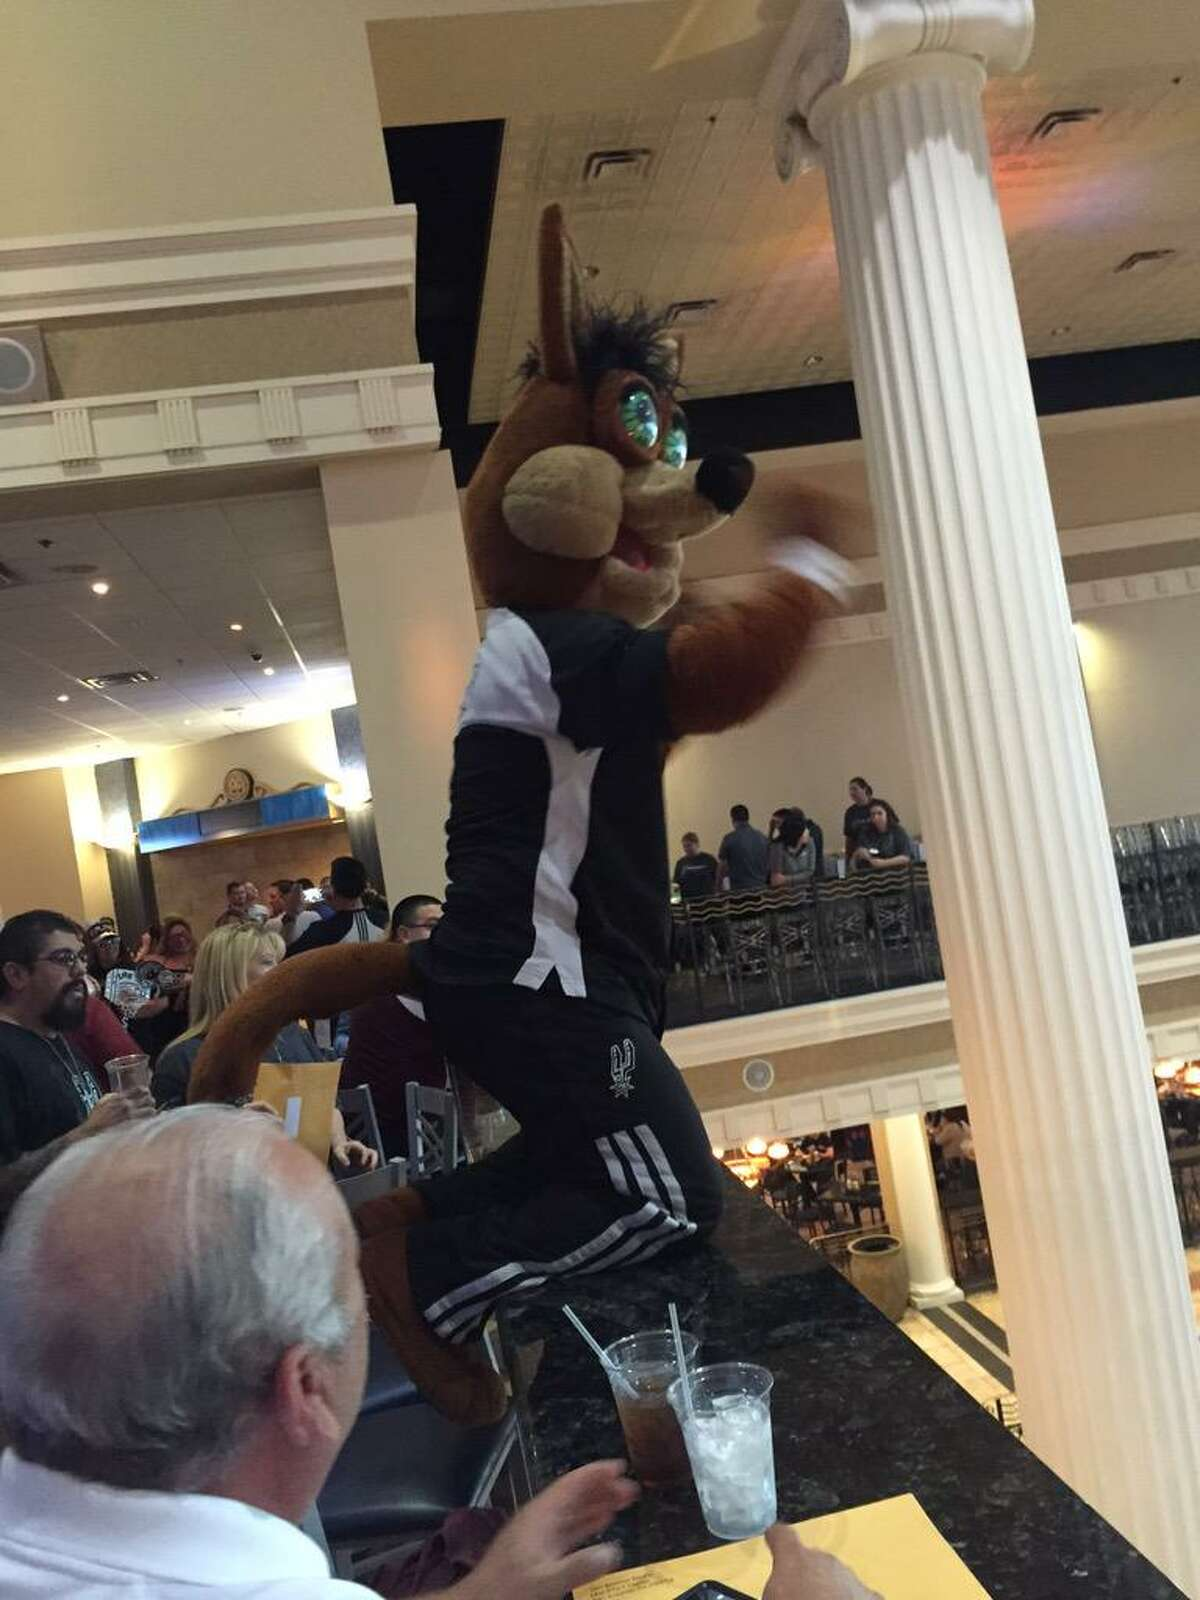 The Spurs Coyote proved any time and any place can be the prime time to party, even in the middle of the week on top a bar inside the Palladium Theatre.